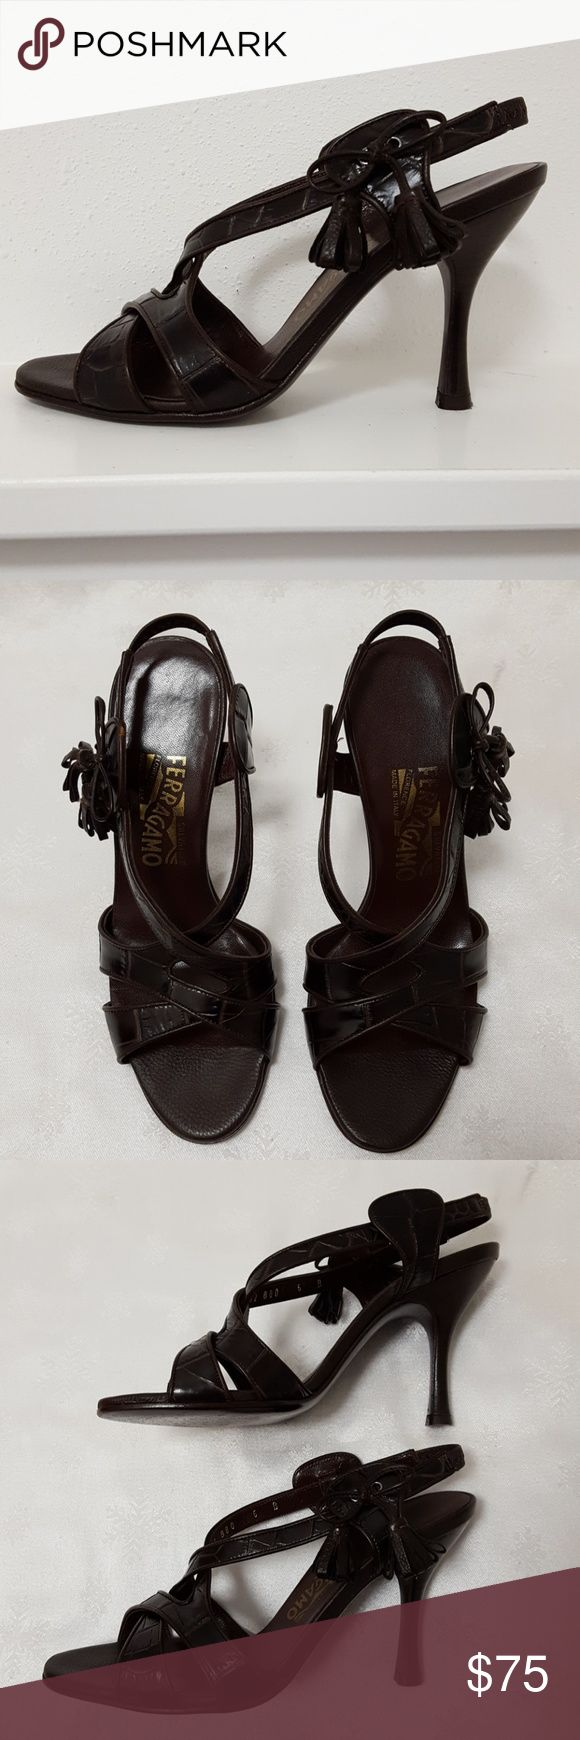 Salvatore Ferragamo Brown Strappy Heels Salvatore Ferragamo Brown Strappy Heels. Elastic at back of heel. Croco embossed leather with tassel detail on the side.  3.5 inch heel. Wear on soles and heels. Size 6 B. Salvatore Ferragamo Shoes Heels